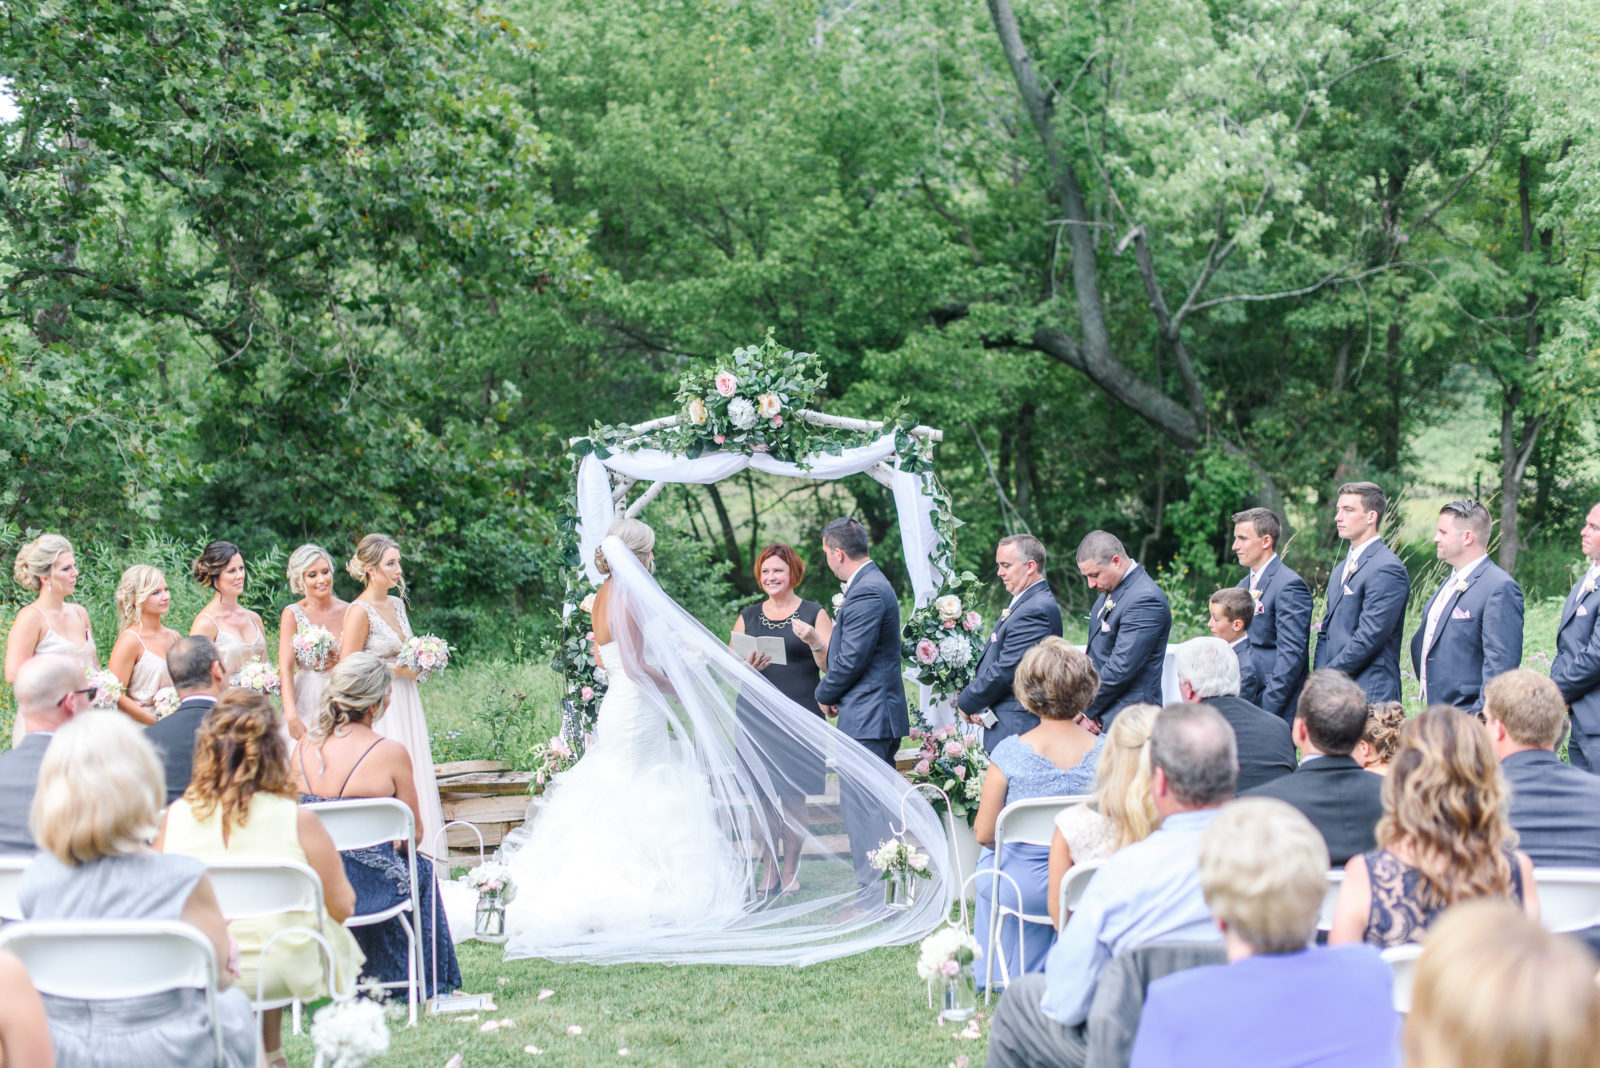 How To Plan An Outdoor Wedding 10 Planning Mistakes: Top 10 Mistakes Couples Make When Wedding Planning